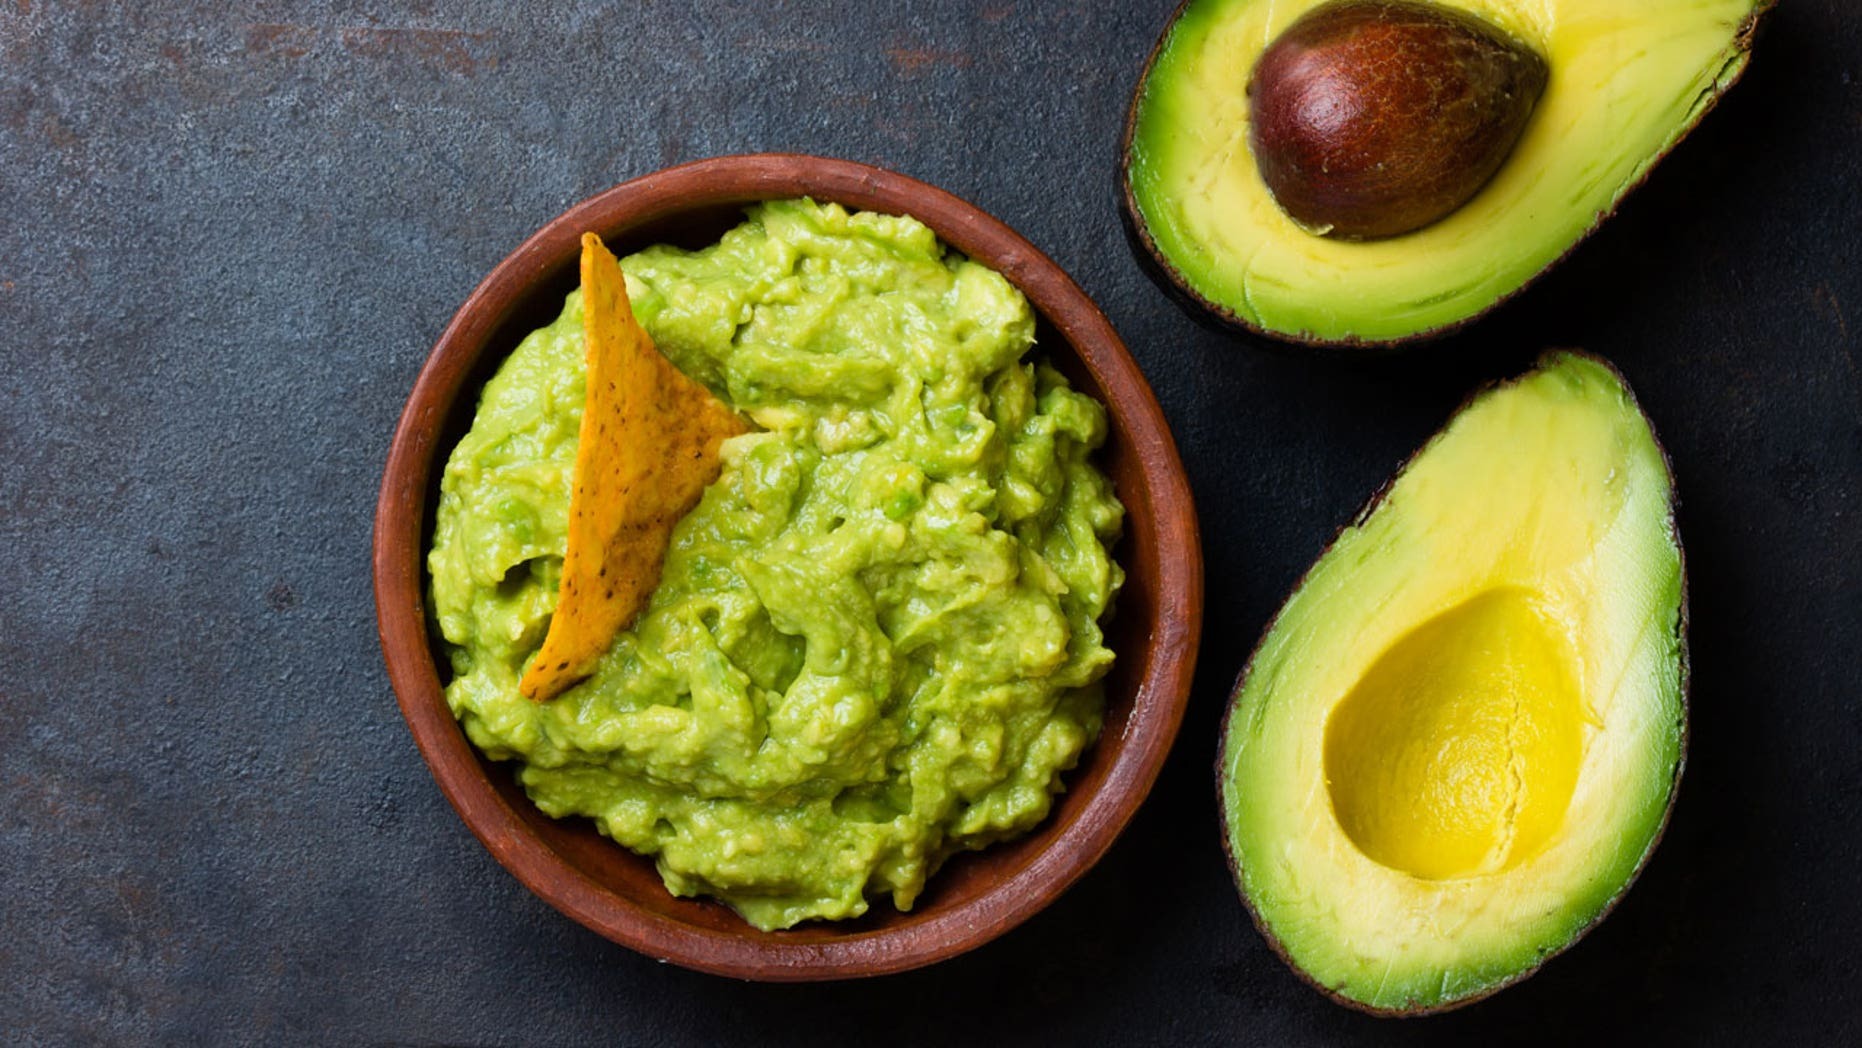 """If you miss this month's guac fest, have no fear, the hotel will also be offering the """"Guacamania experience"""" in September in honor of Mexico's Independence Day."""